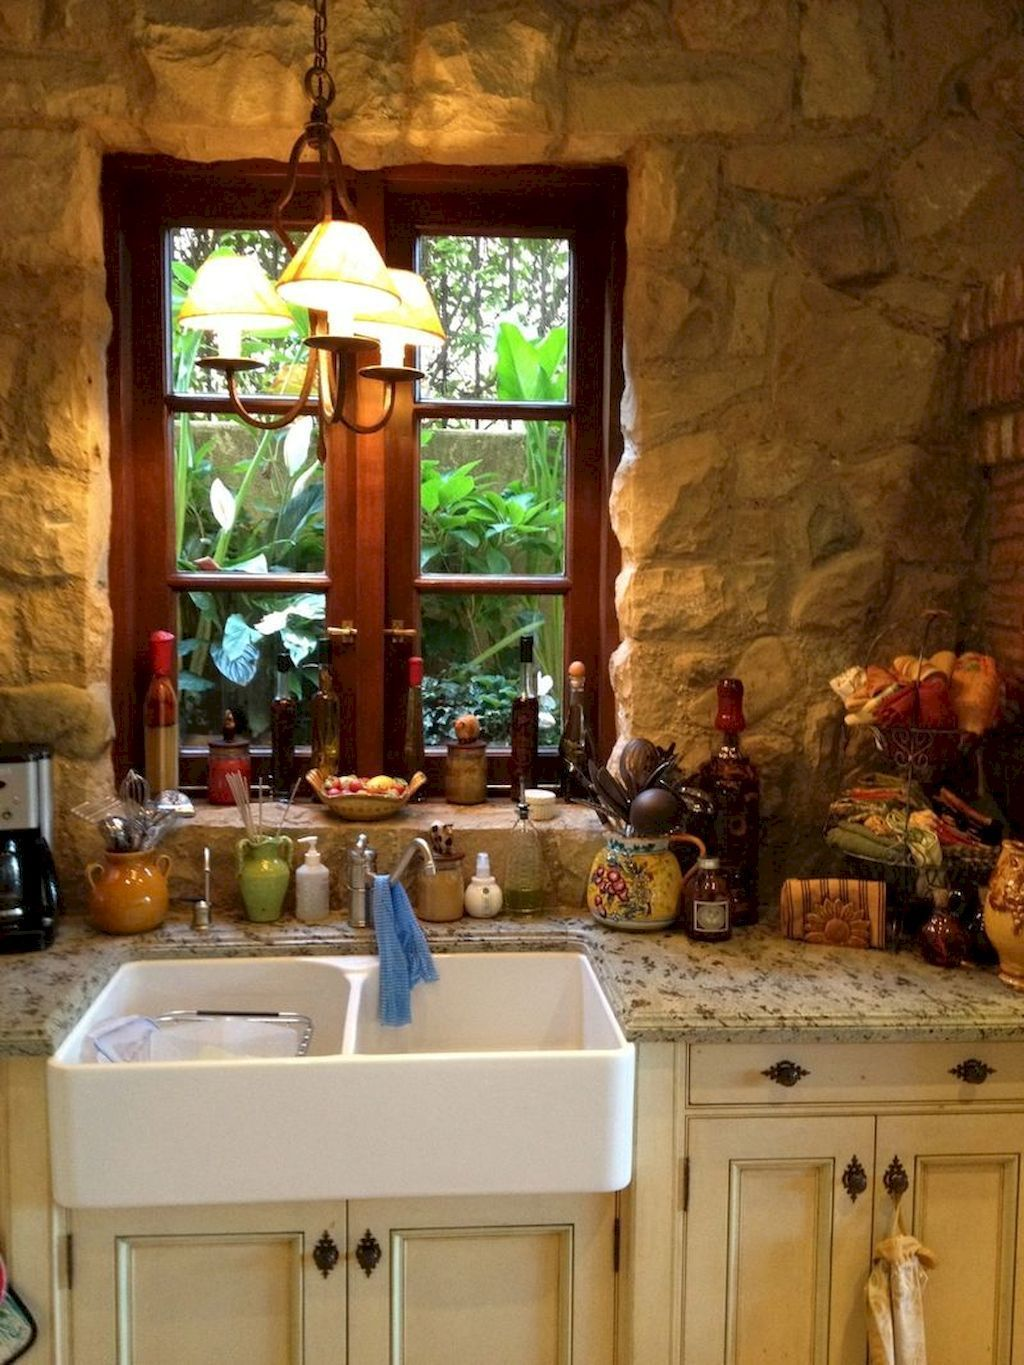 Rustic kitchen window decor   french country kitchen design ideas  country interiors rustic